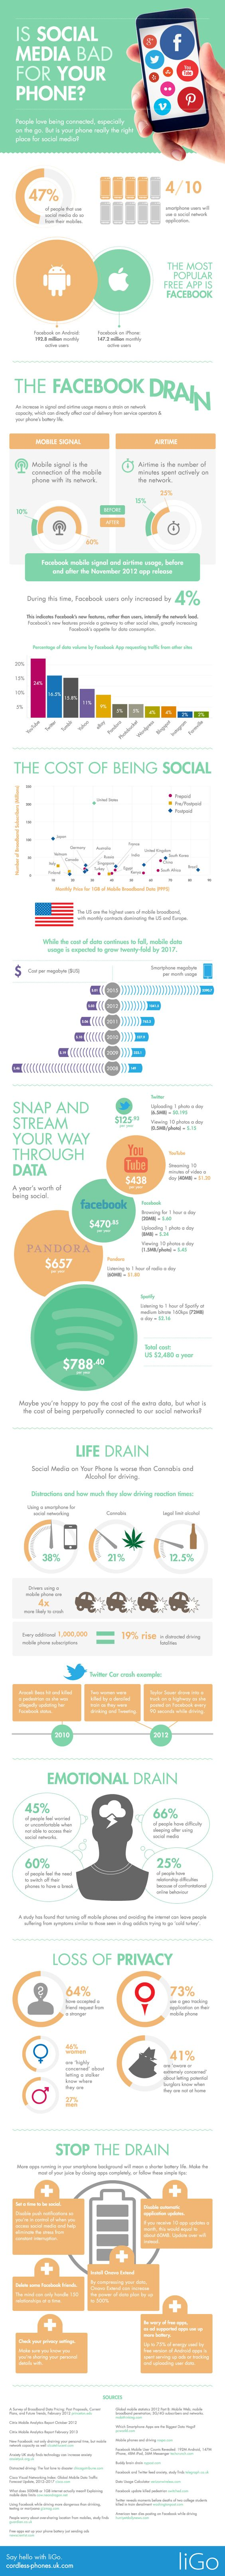 Is Social Media Bad for you? #Infographic #health #money